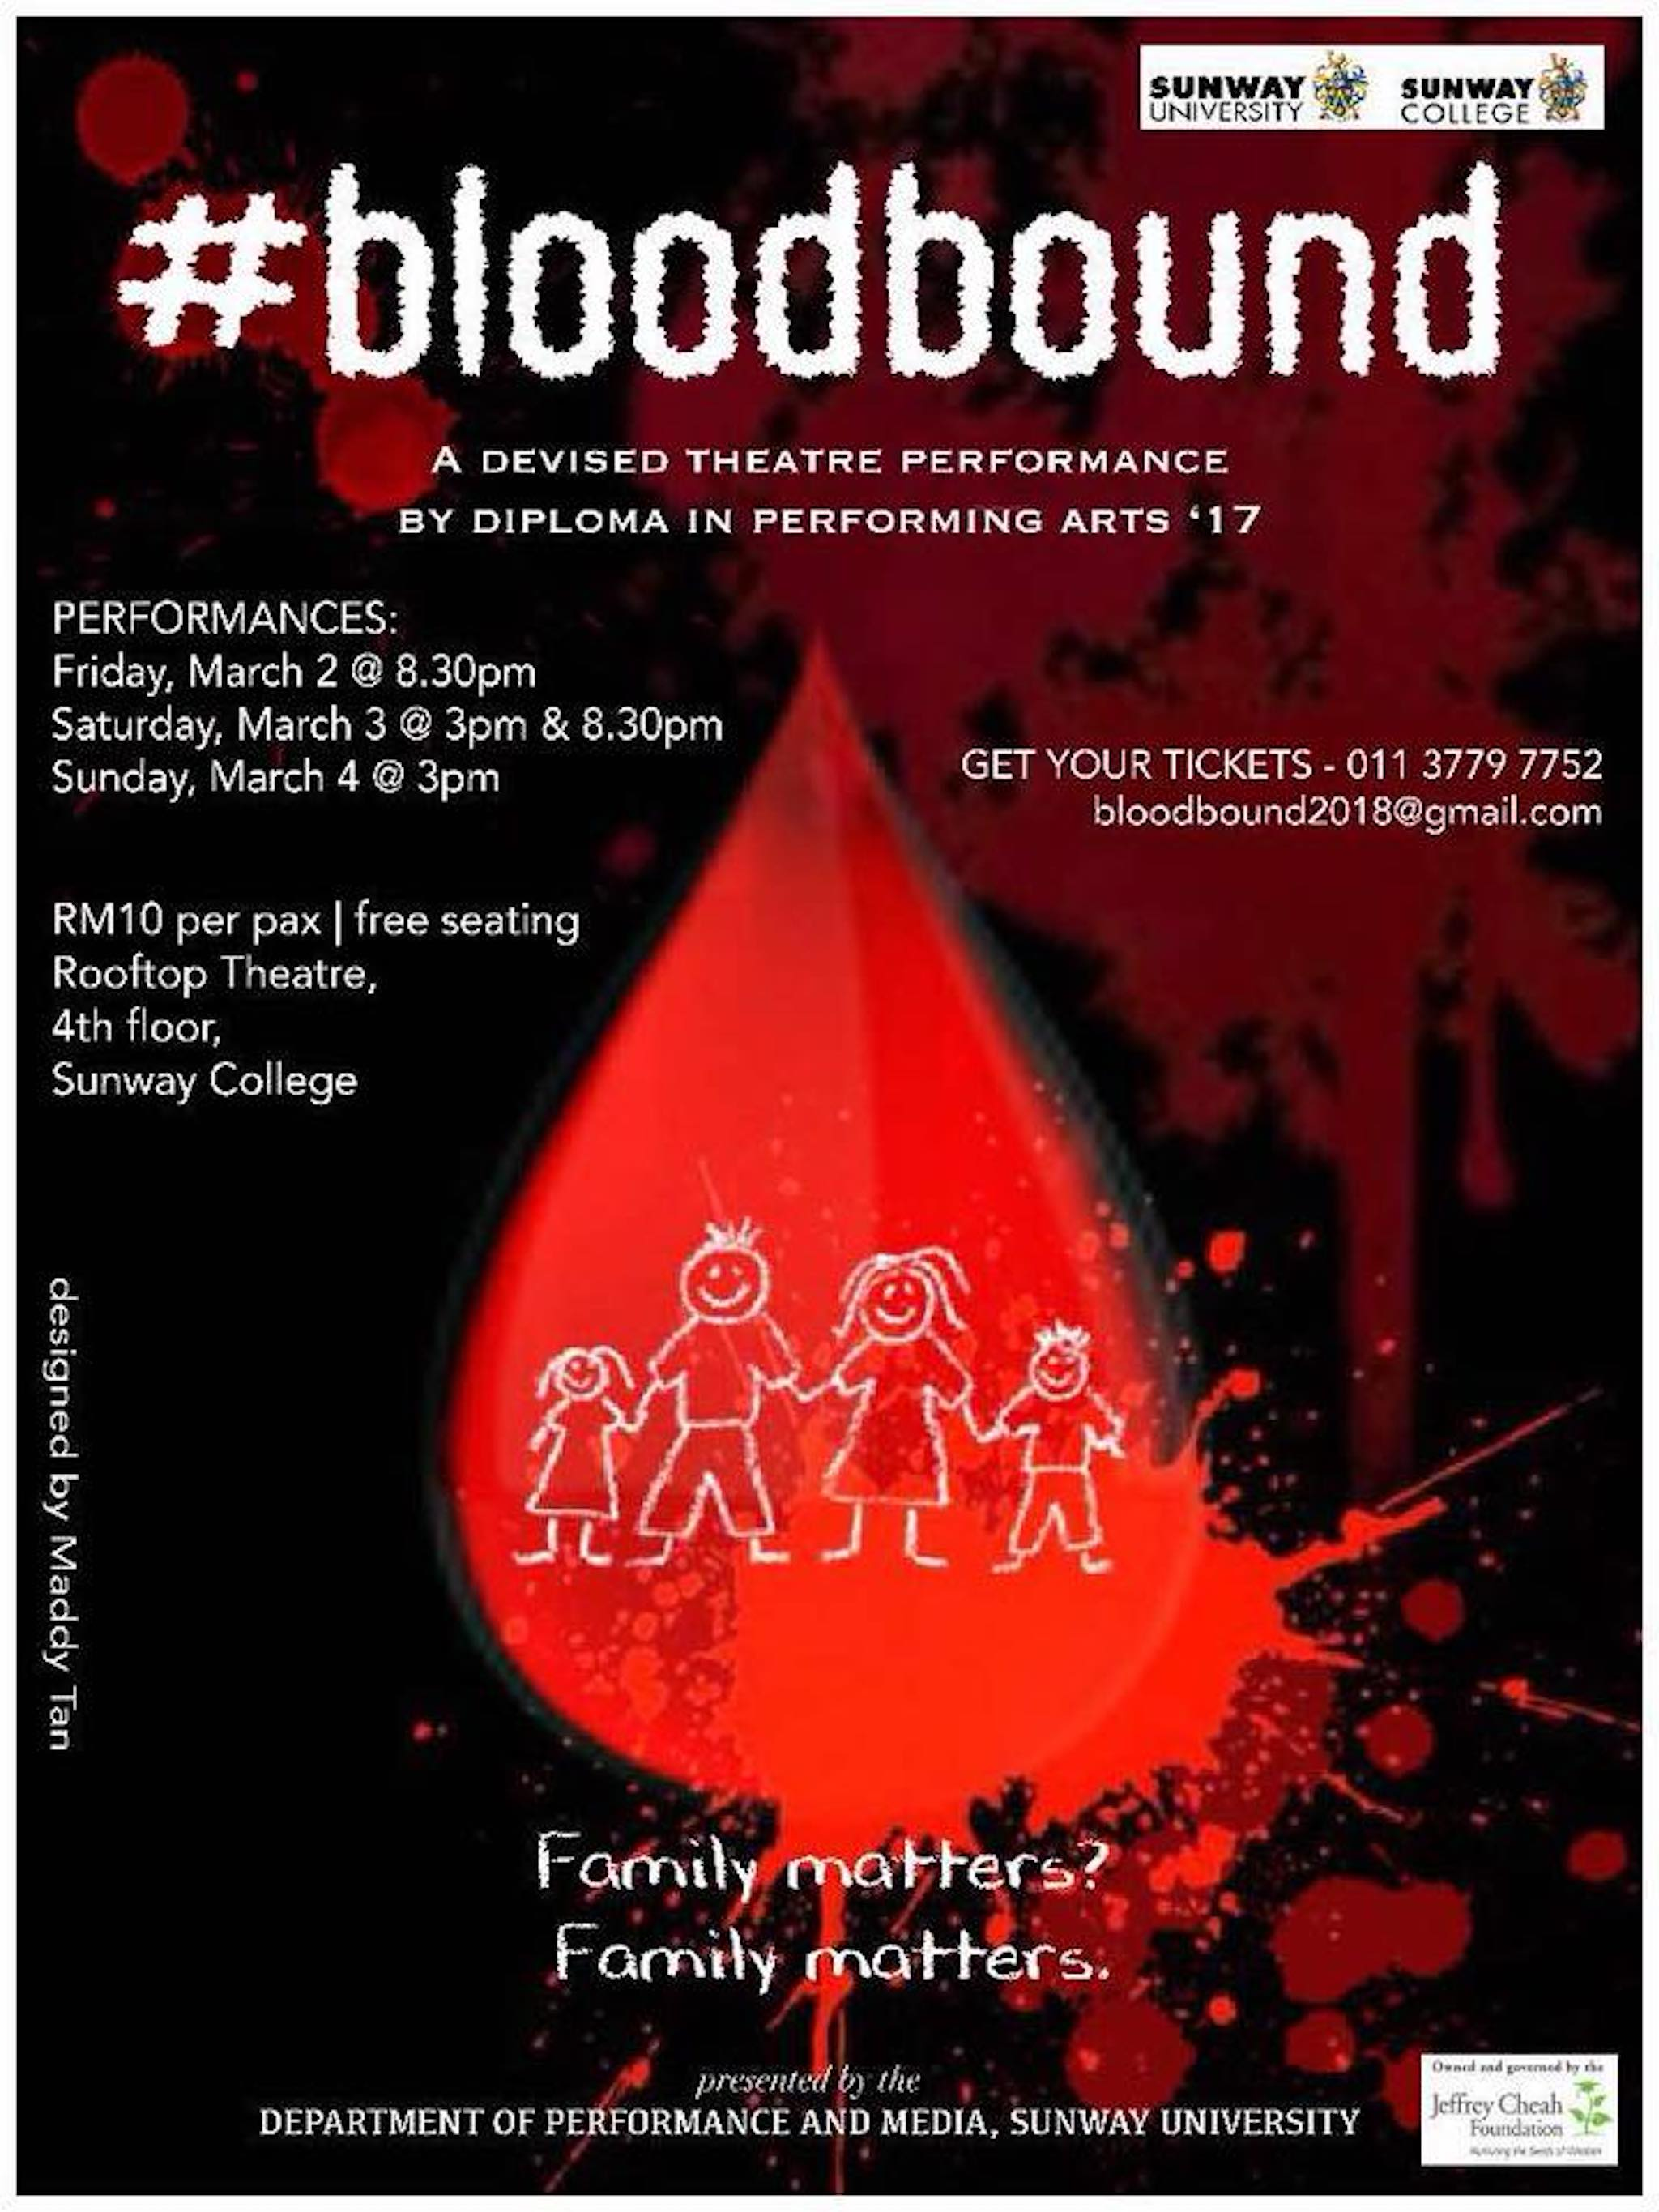 2018 Bloodbound cover